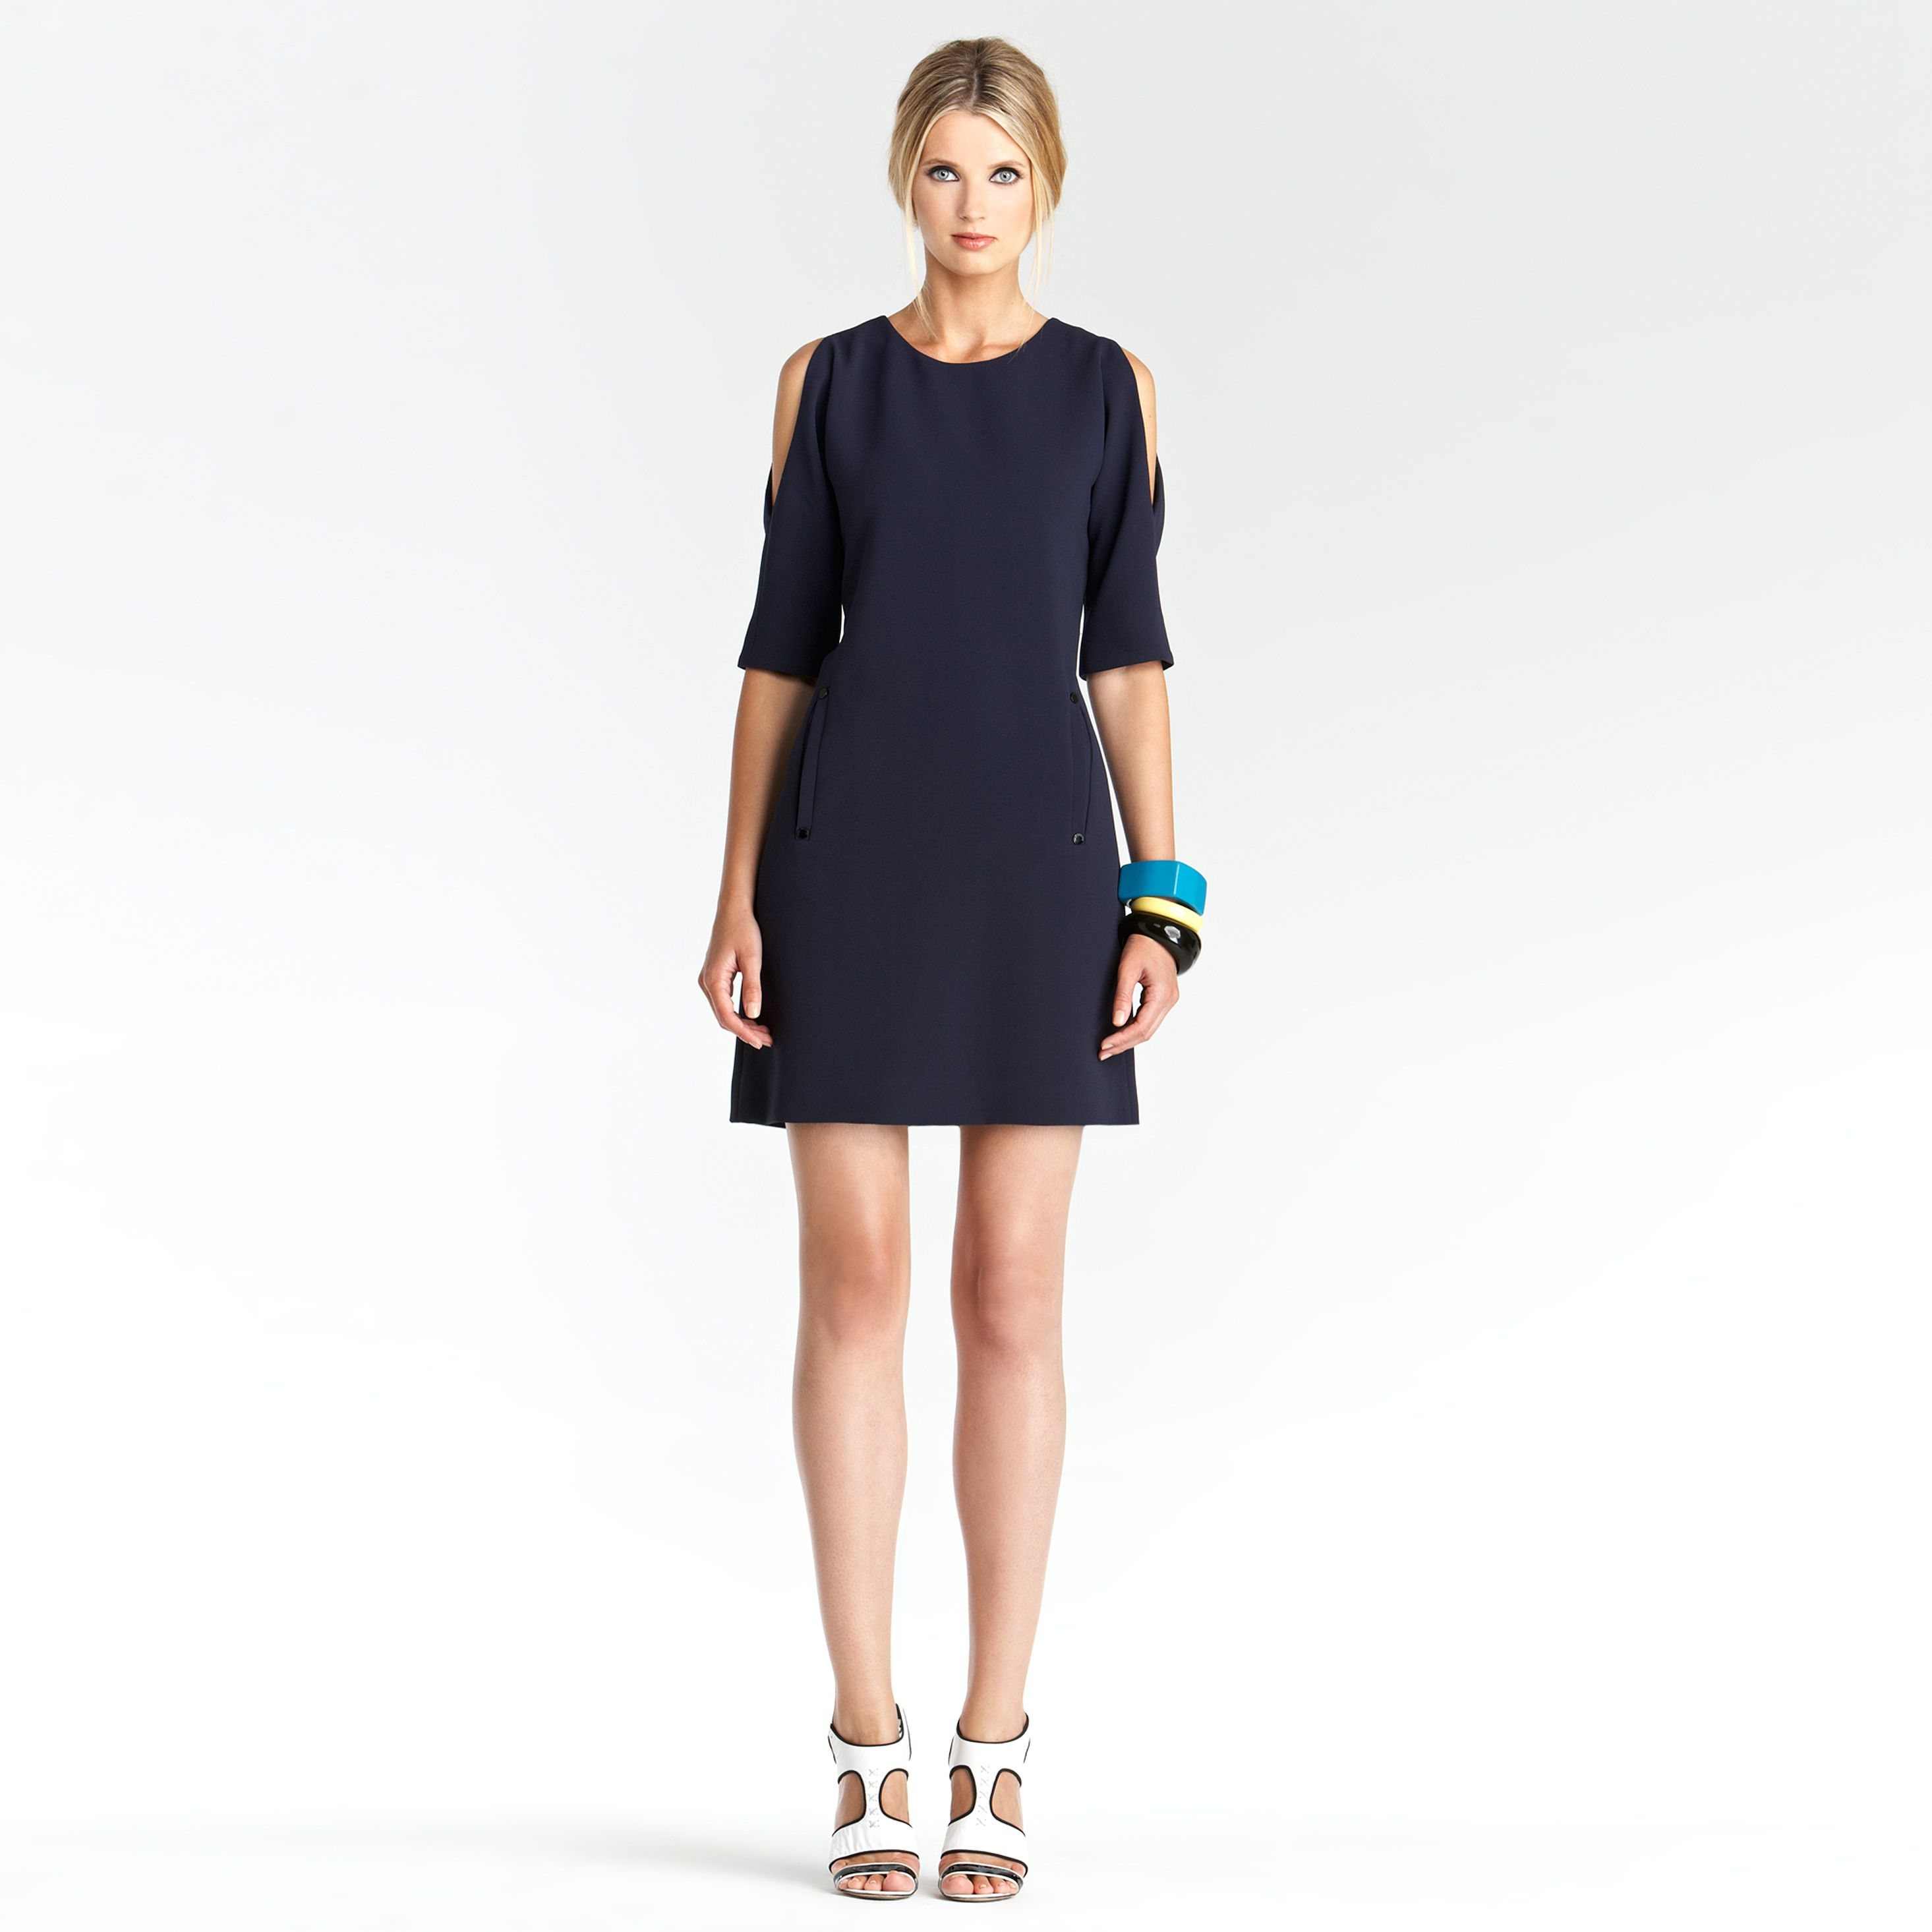 Crepe cut out shoulder dress - nice in navy